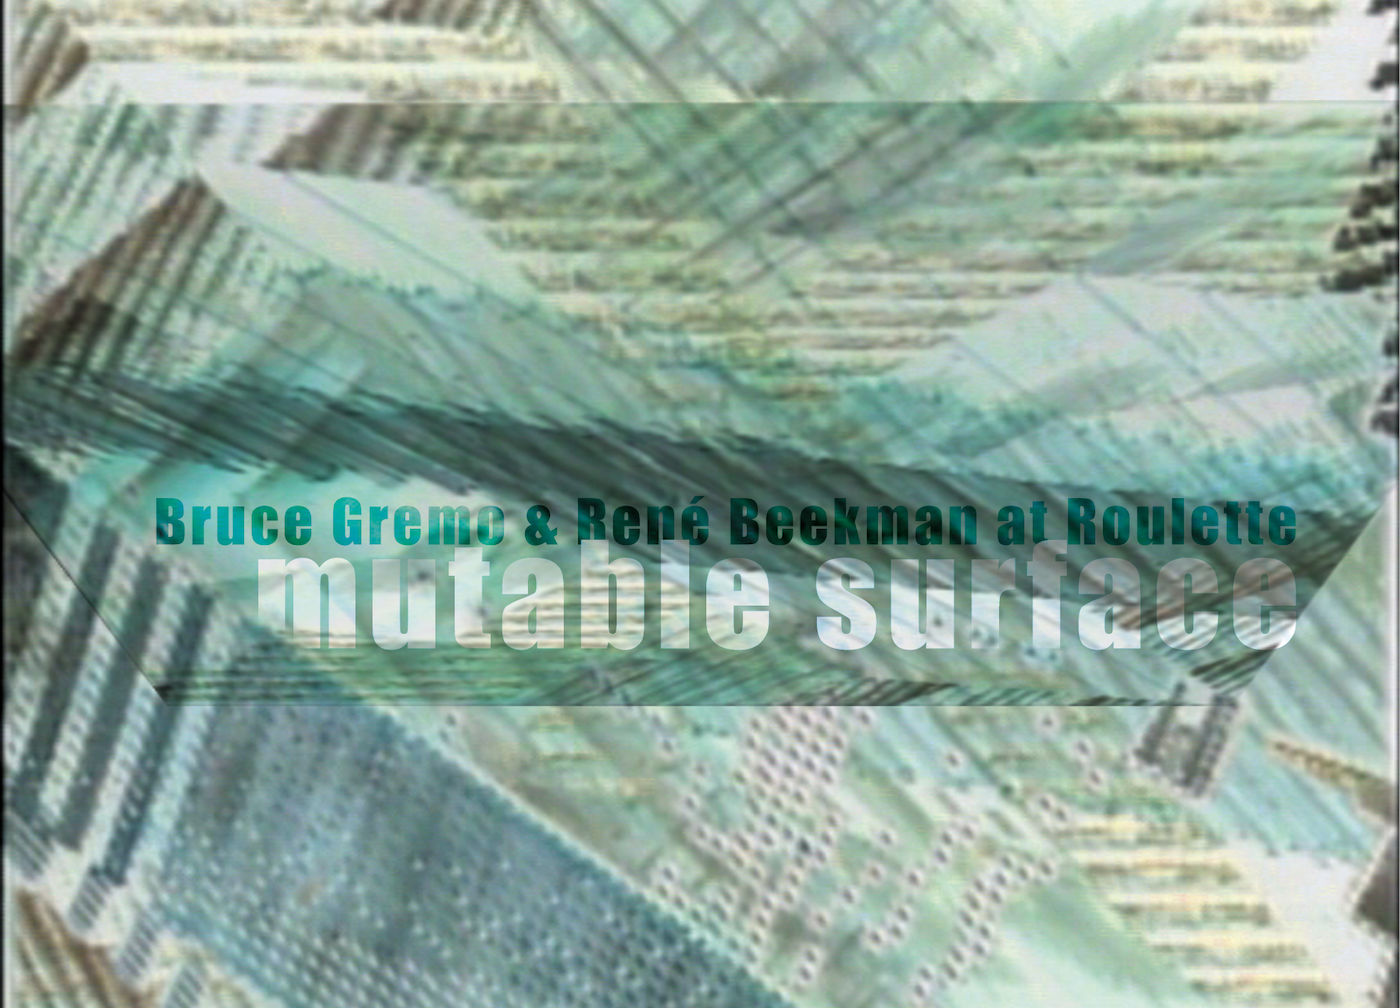 Roulette – Mixology Festival performance Opening 20:30 René Beekman & Bruce Gremo Mutable Surface:inter-routing improvisation using Max/MSP and nato or 14 theaters taken from a certain Chinese encyclopedia